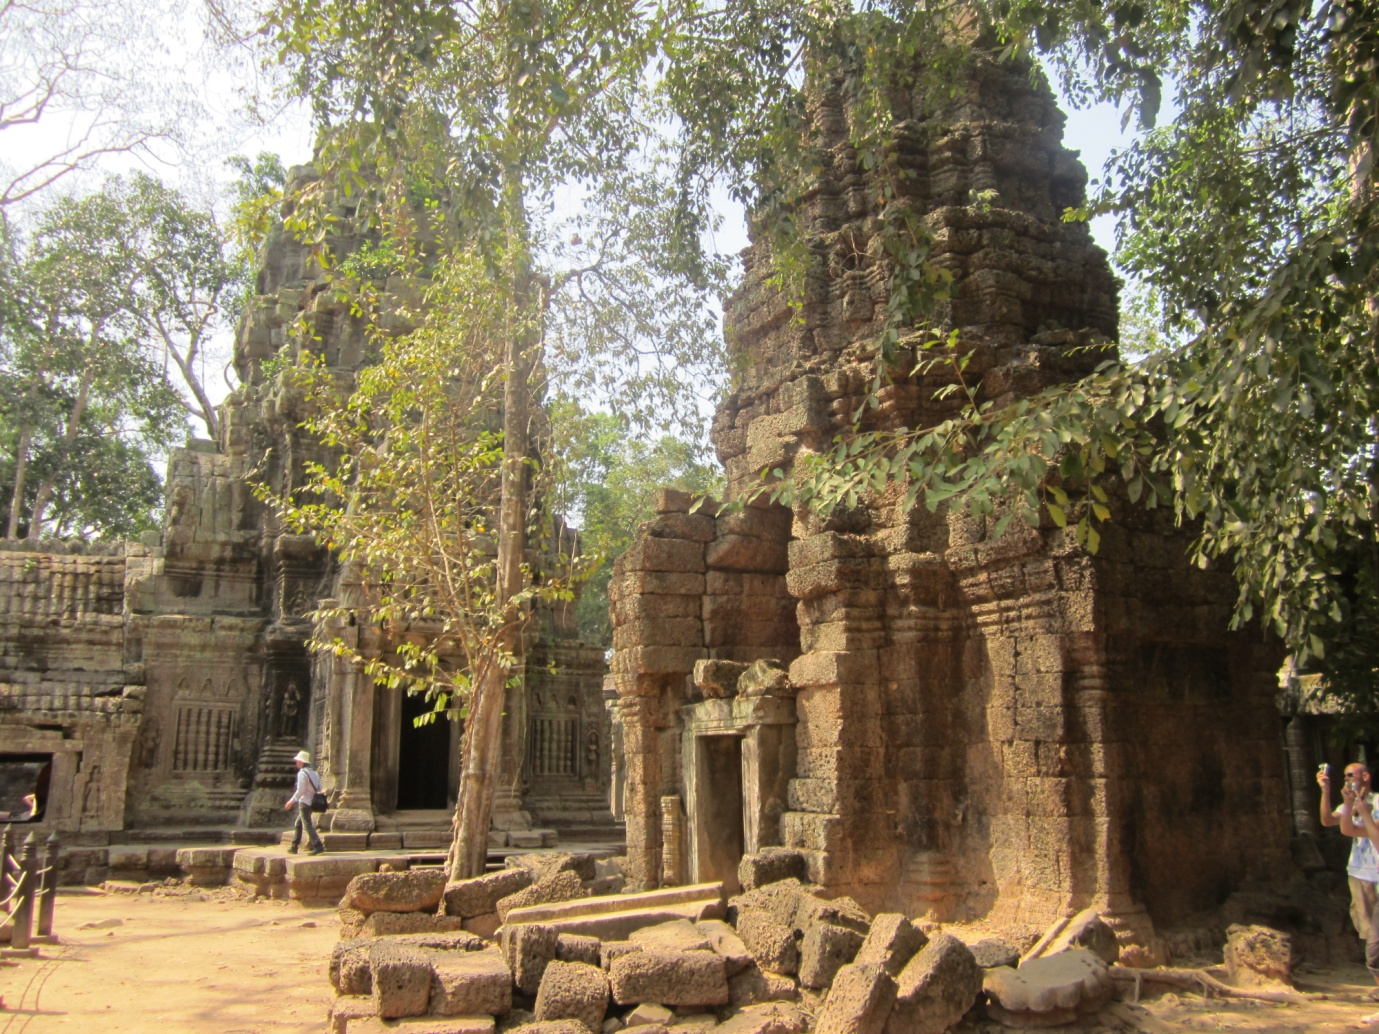 Cambodia images Siem Reap Cambodia HD wallpaper and background 1379x1034